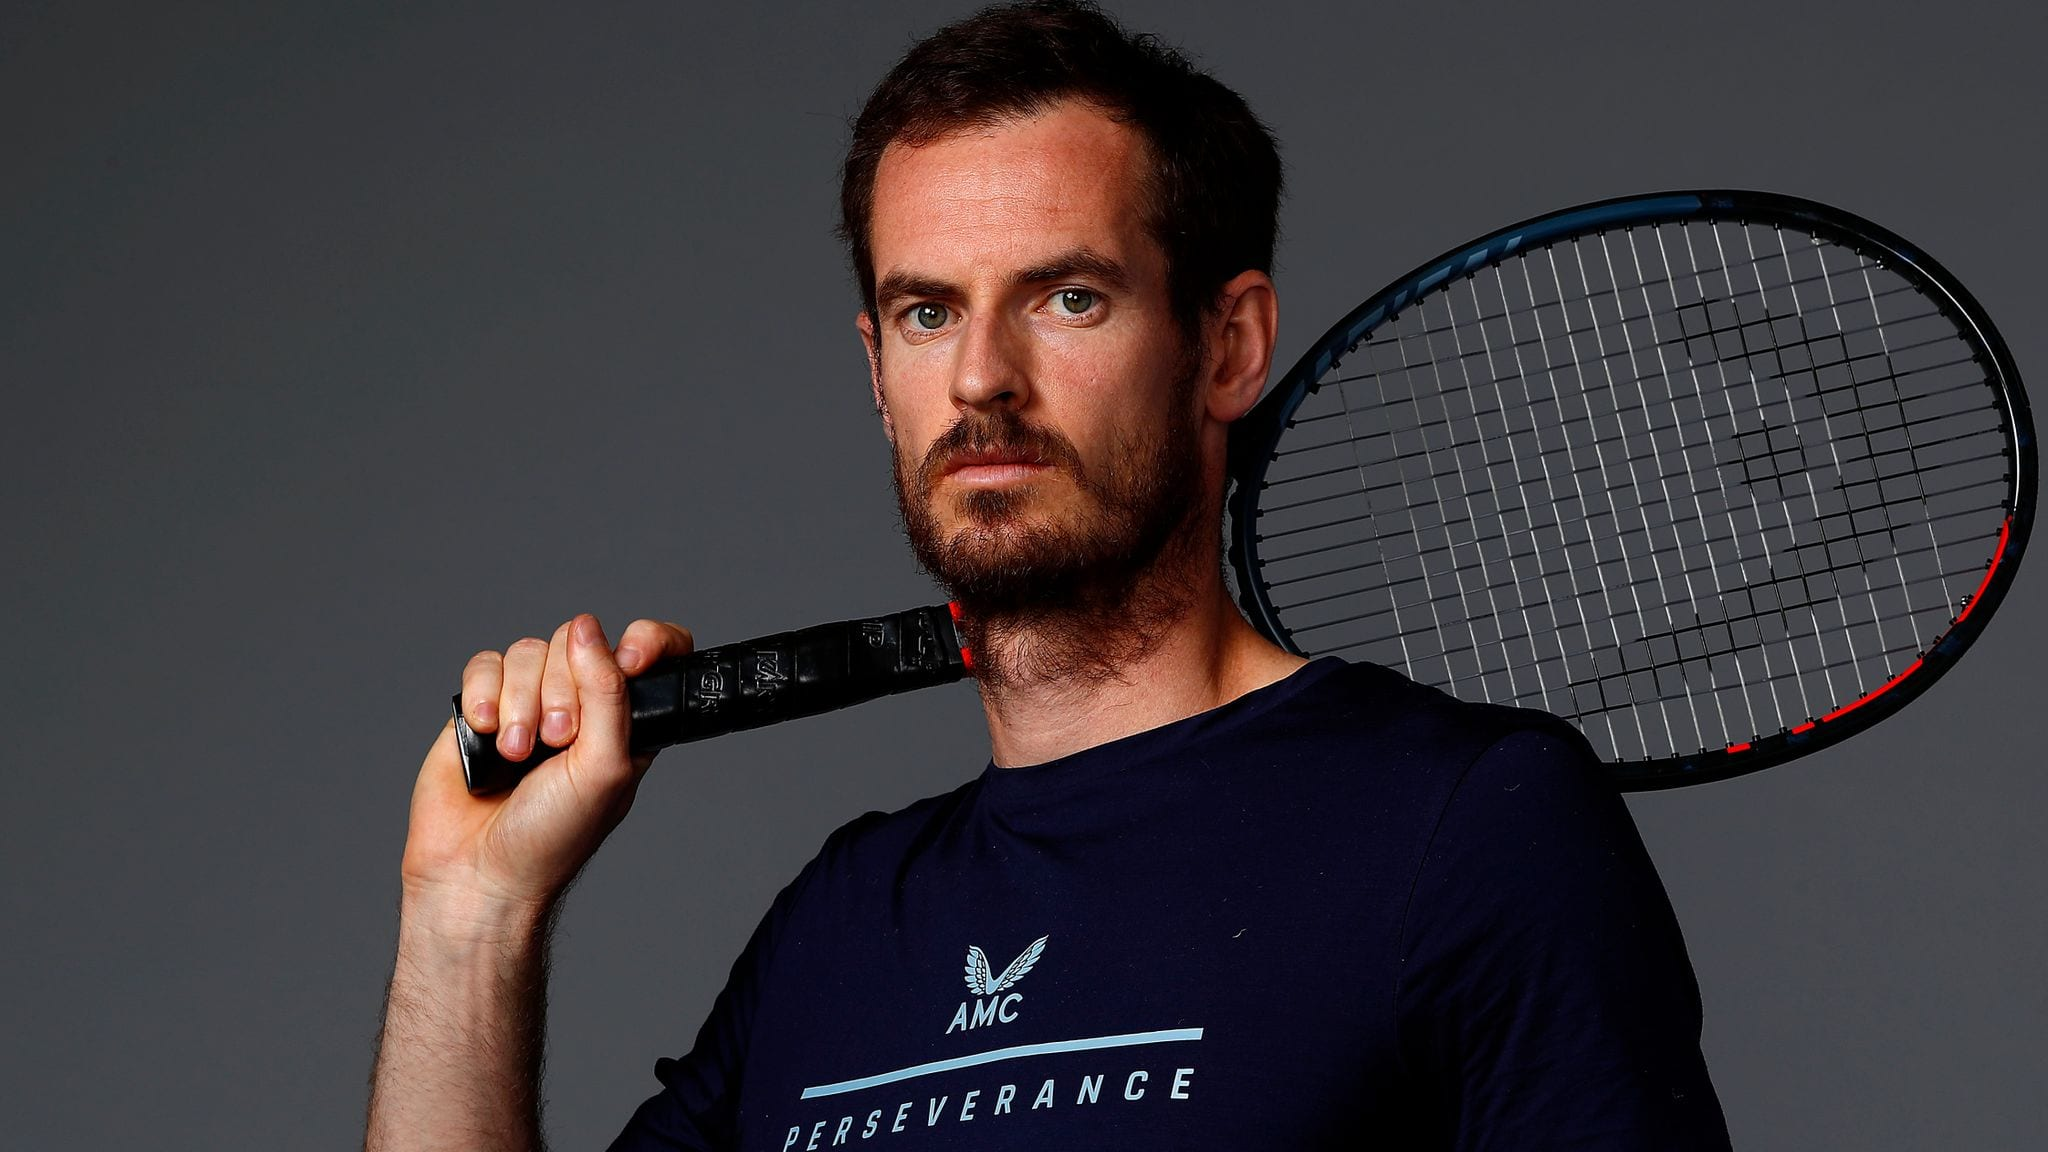 What is the net worth of Andy Murray?